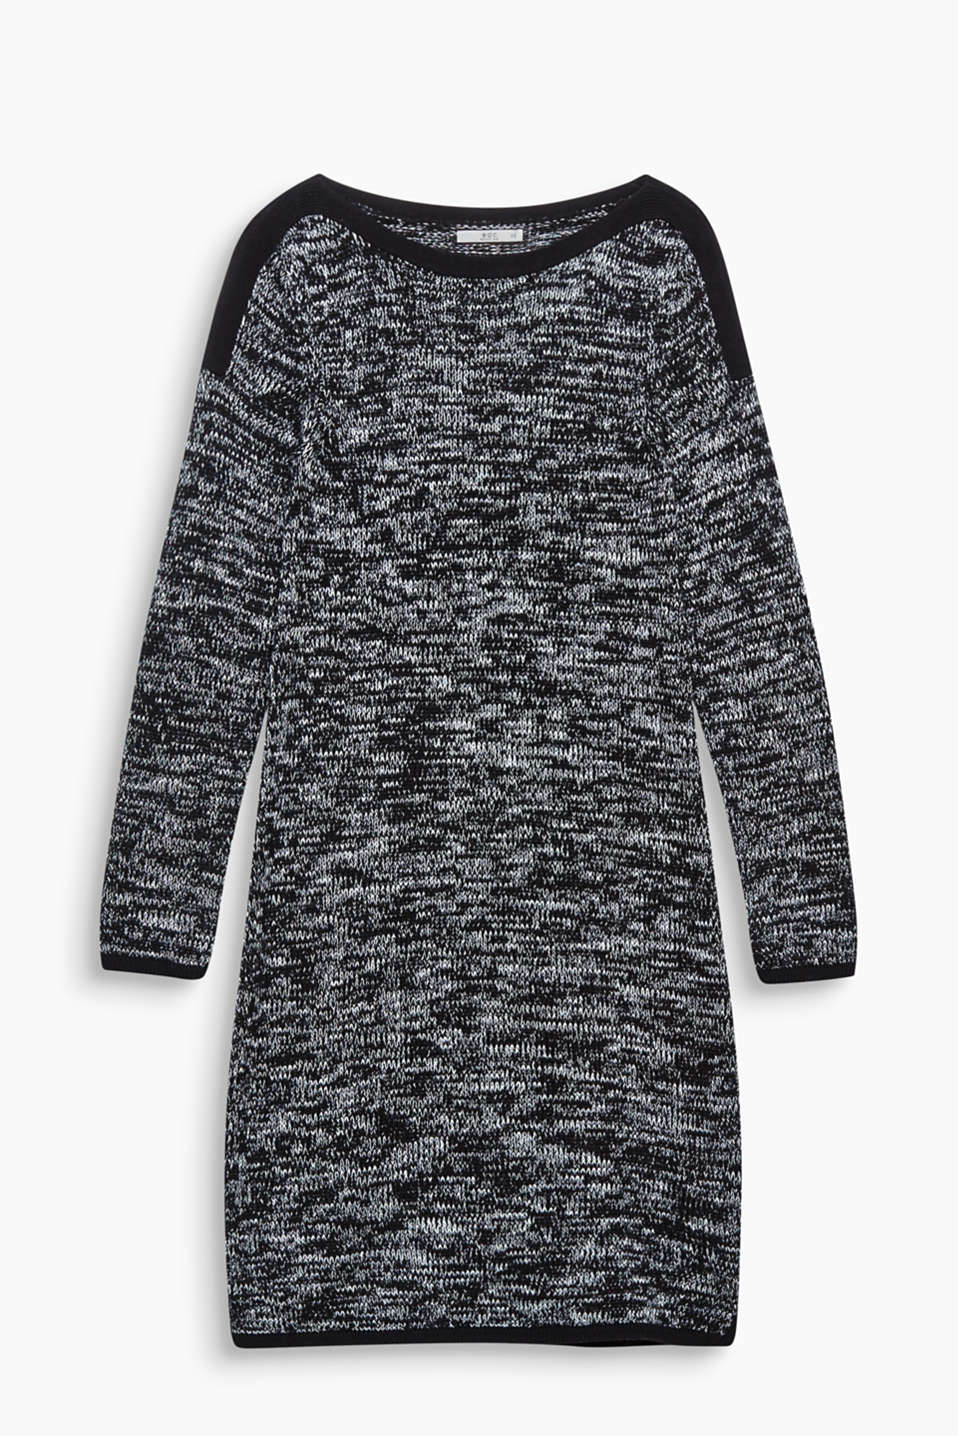 In eye-catching two-tone textured knit yarn!  This mini dress will take you through the autumn